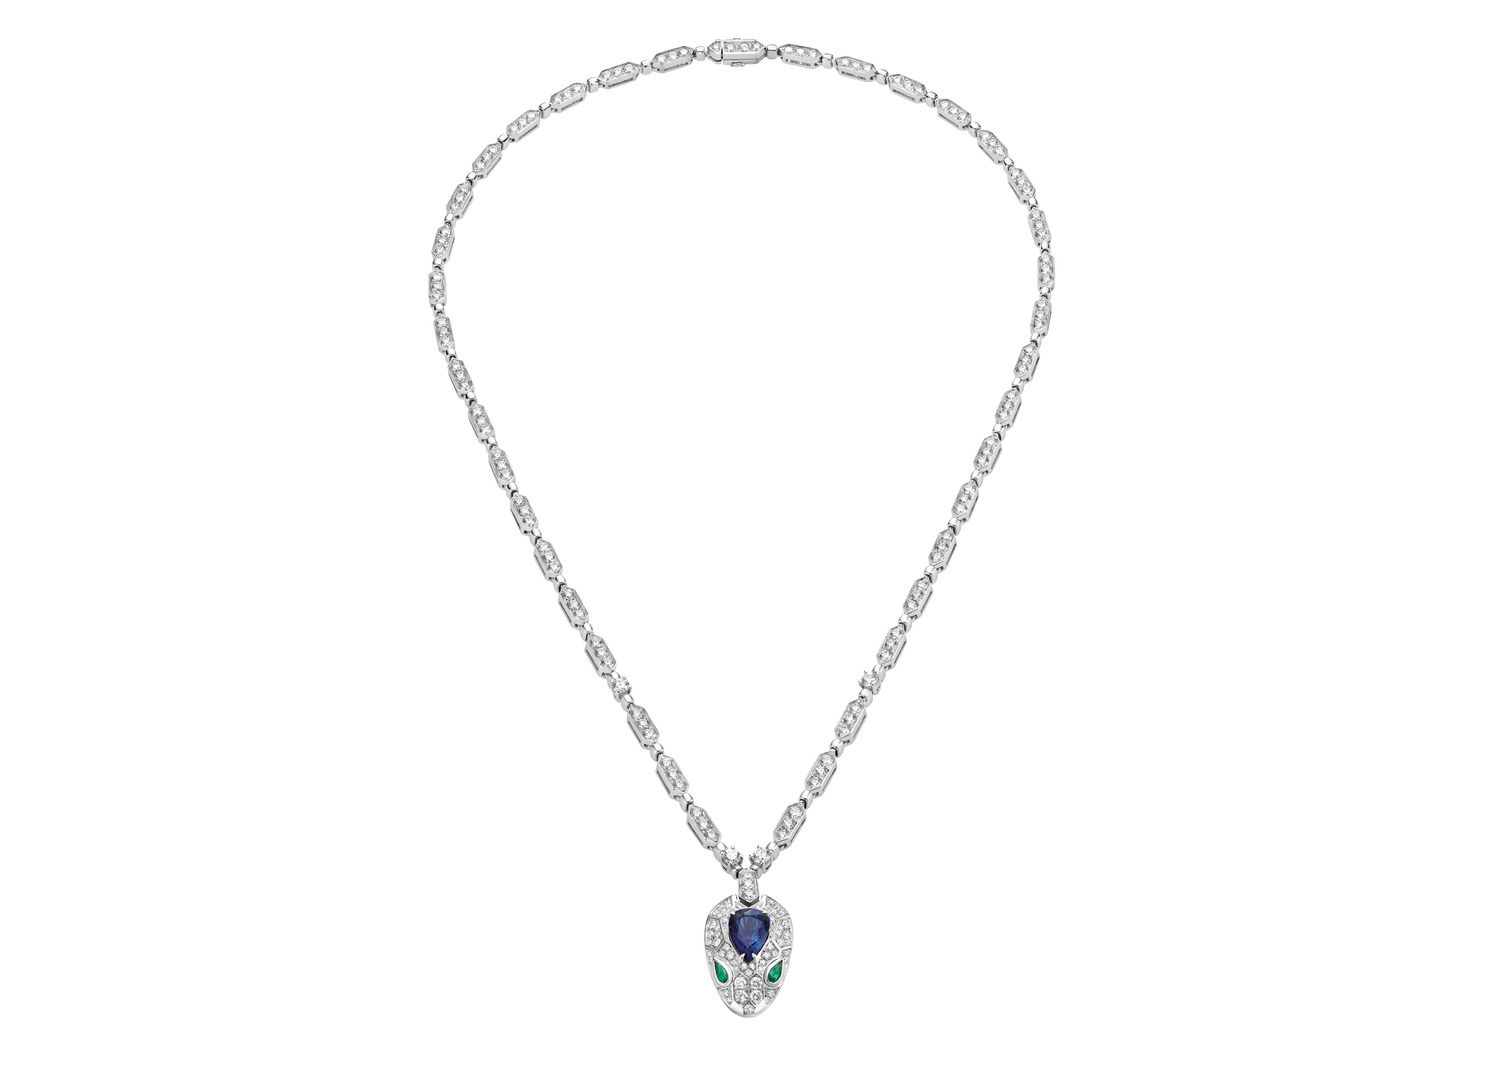 BVLGARI Serpenti 18 kt white gold necklace